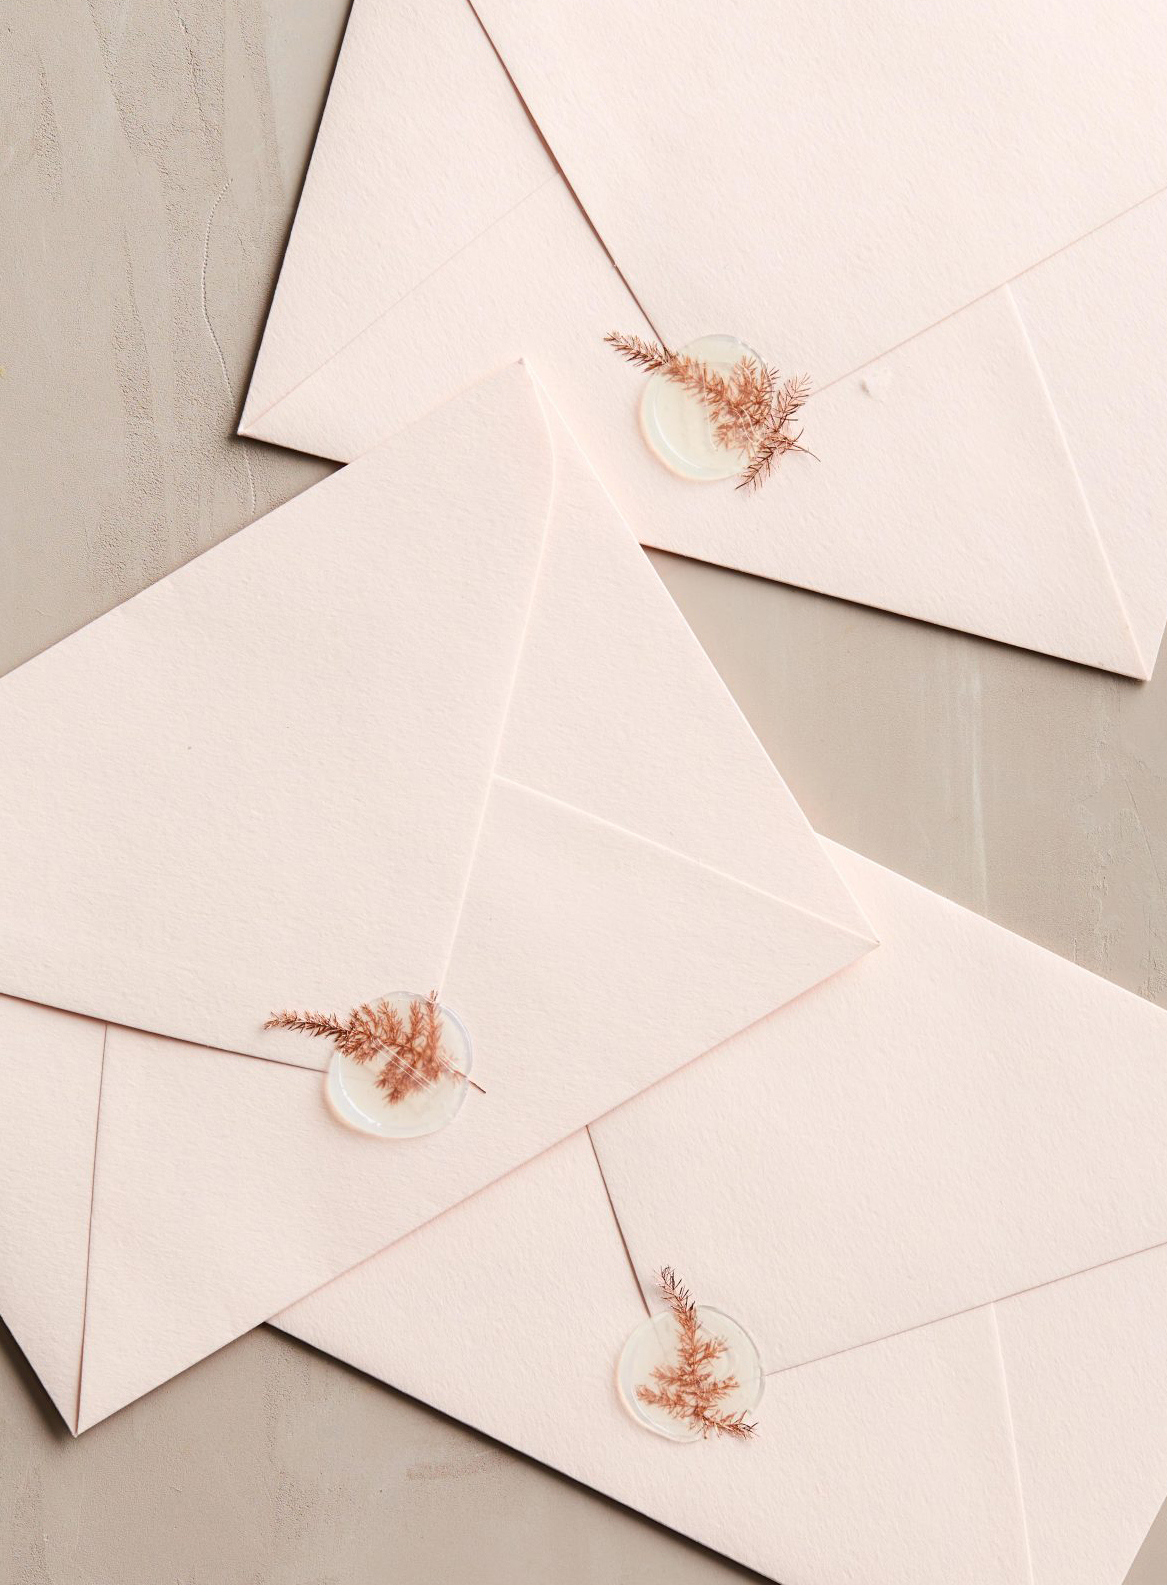 Wax Seals on Wedding Invitations with Dried Flowers